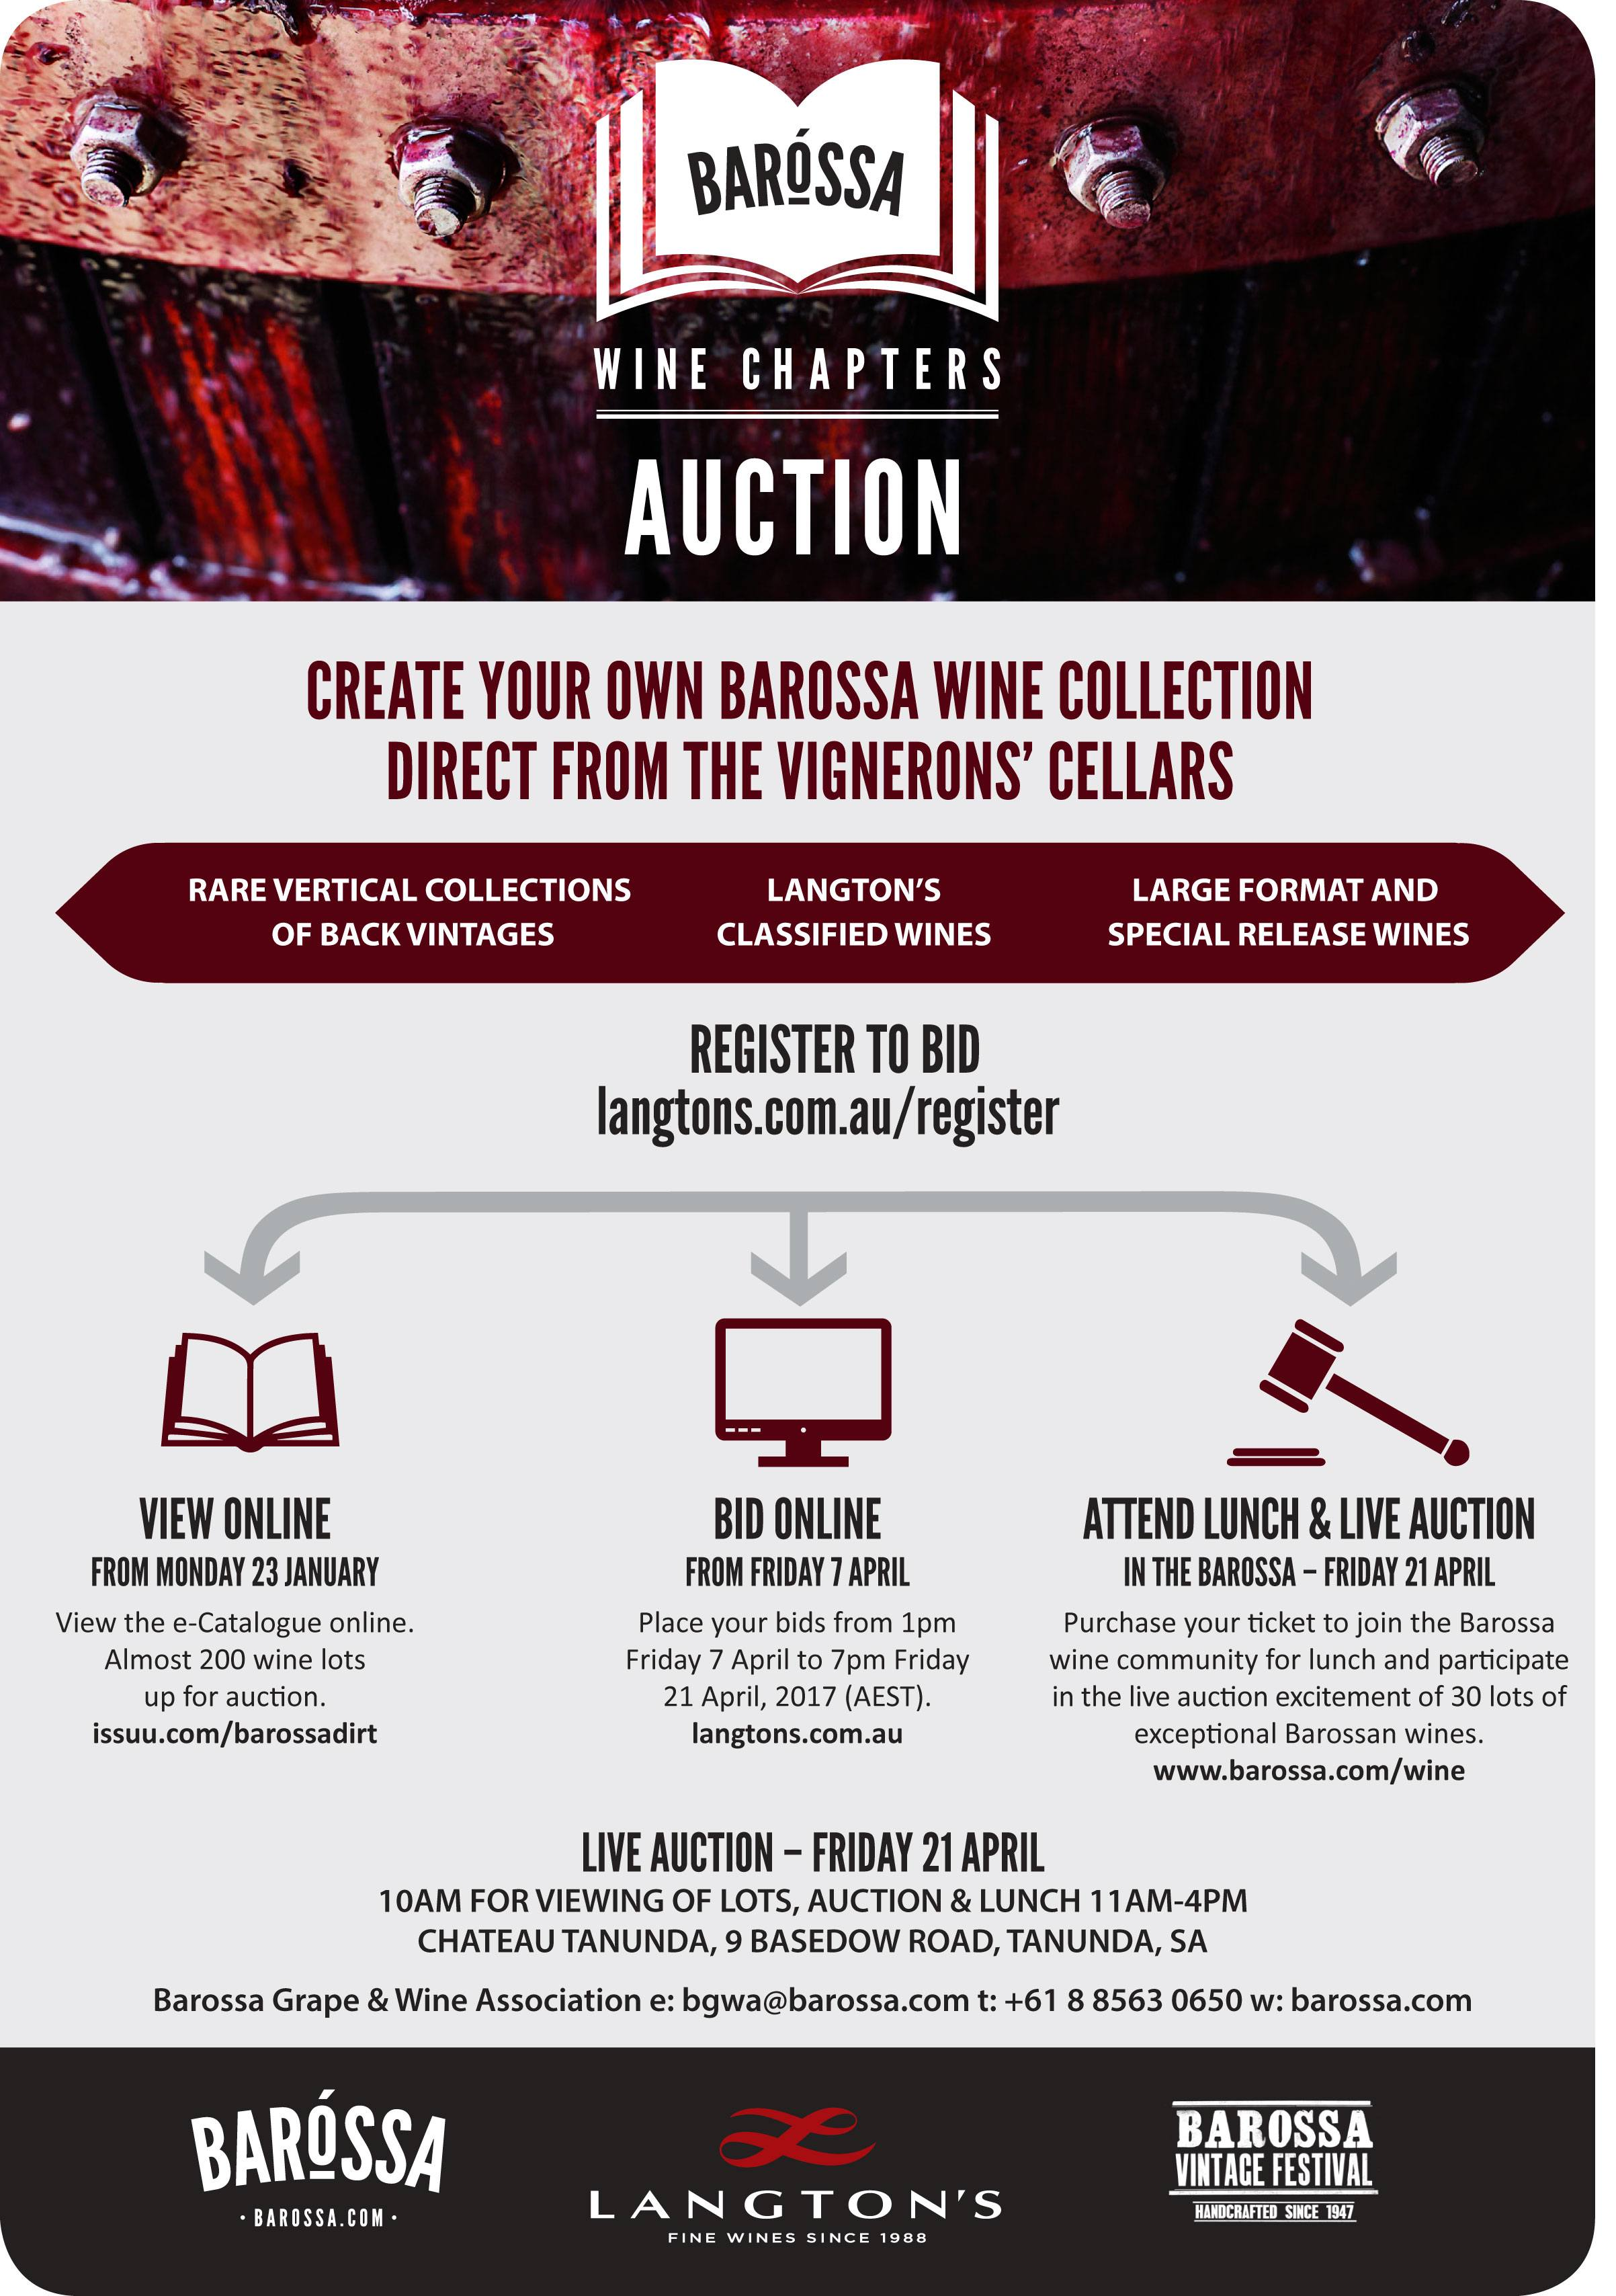 Barossa_Wine_Chapters_Auction_2017-Infographic_final